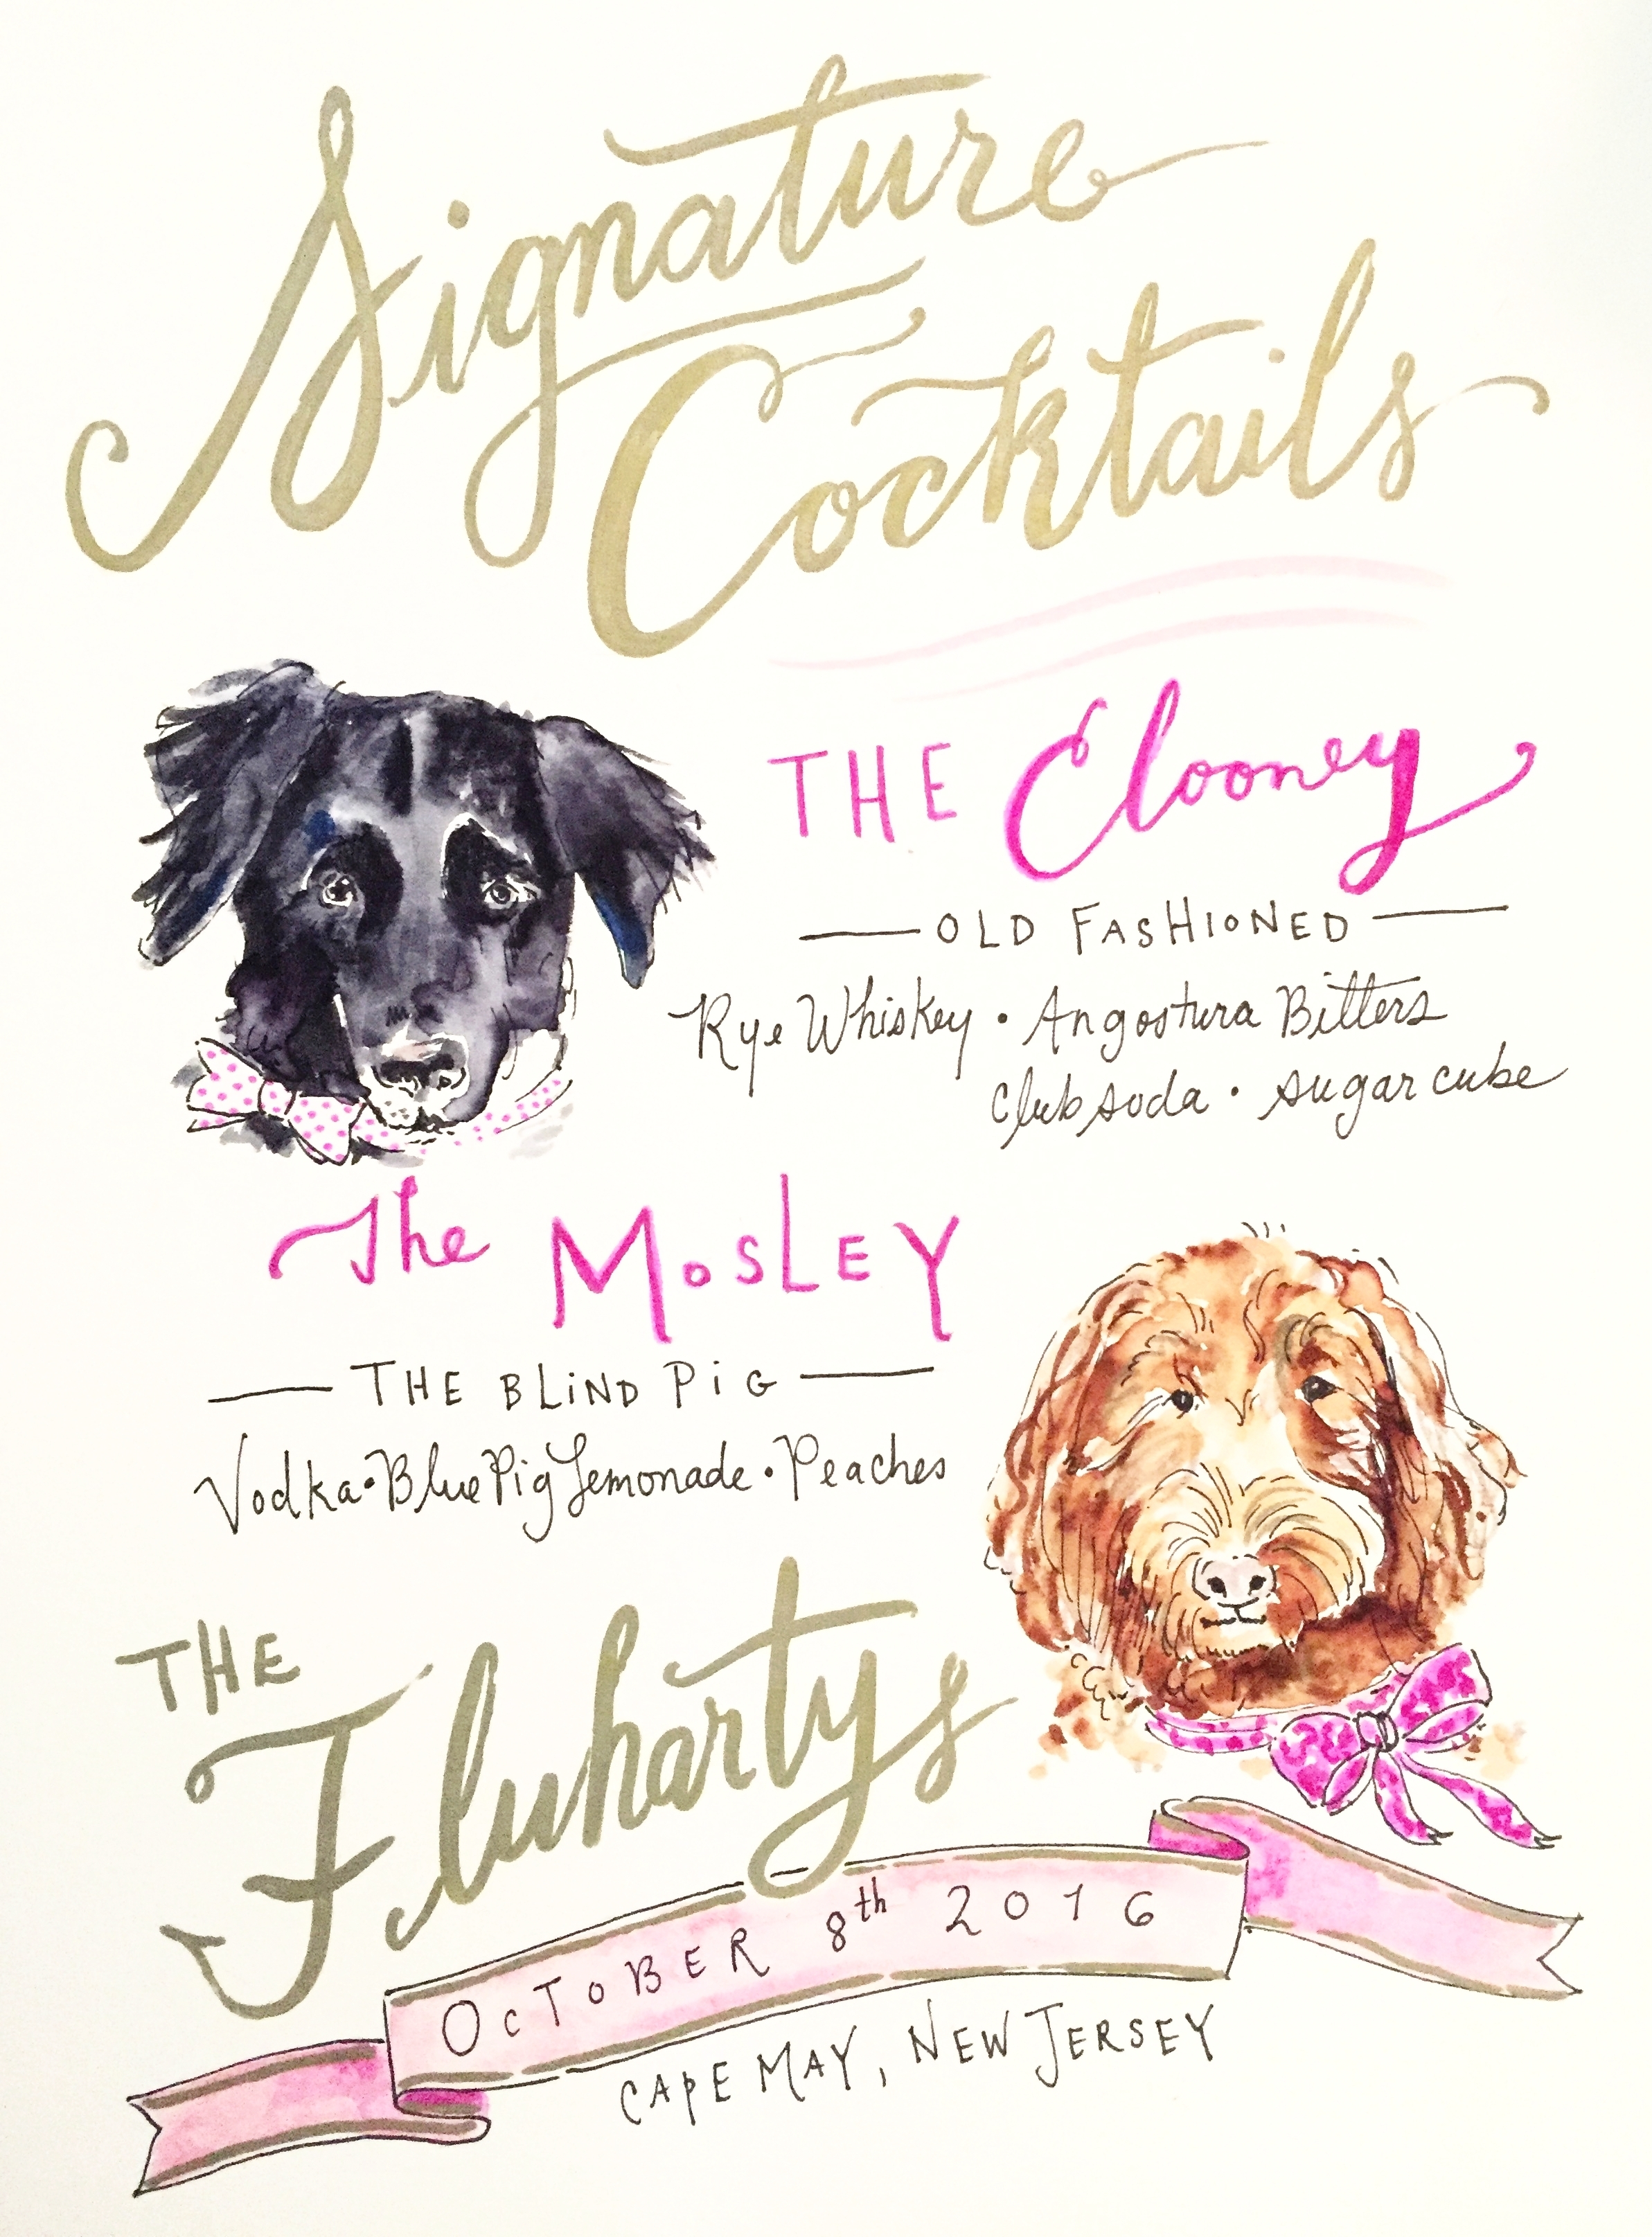 The Fluharty's Signature Cocktail Menu